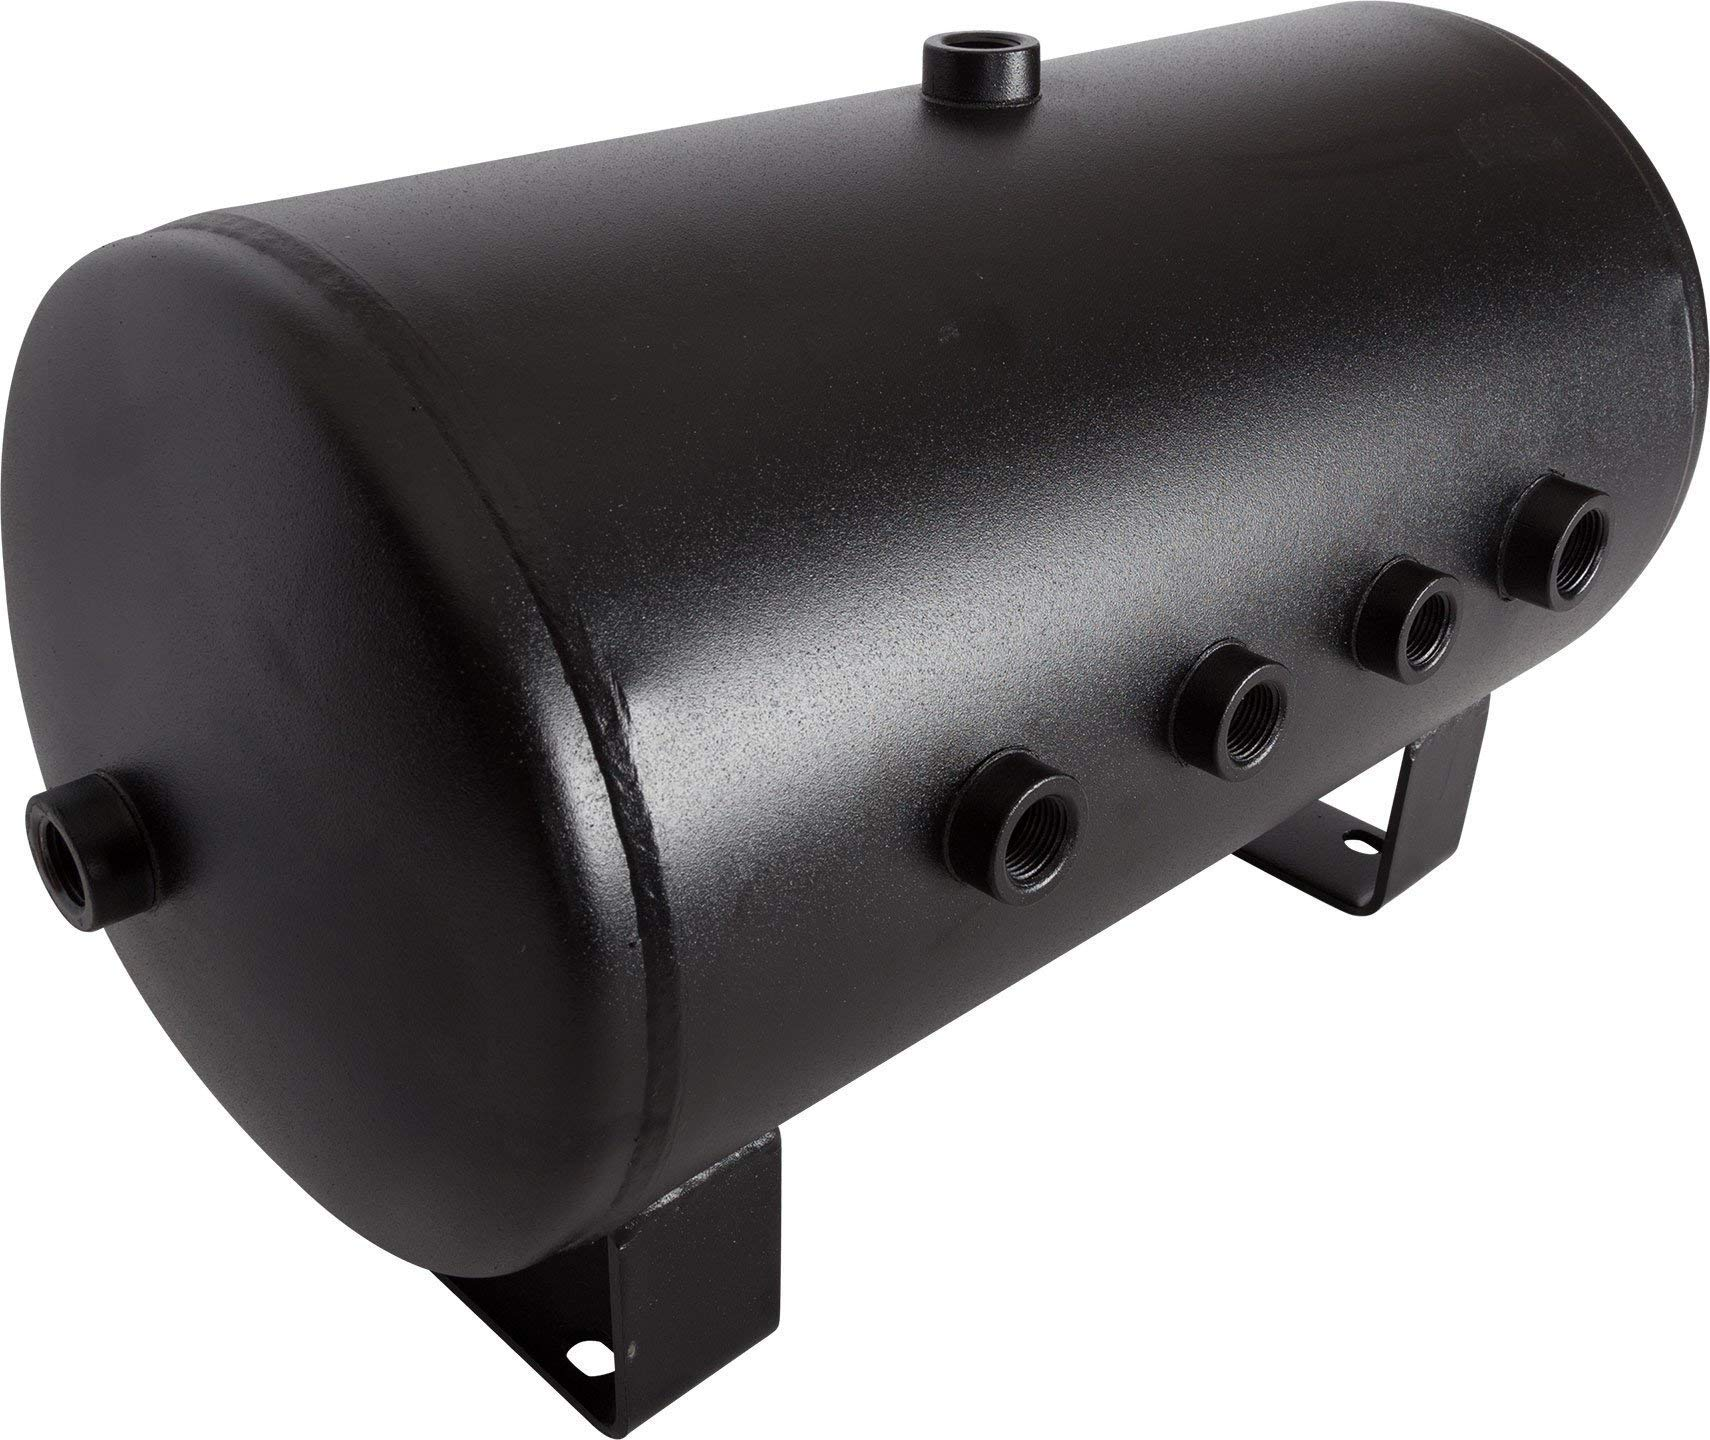 HornBlasters 5 Gallon 8 Port Black Steel Air Tank